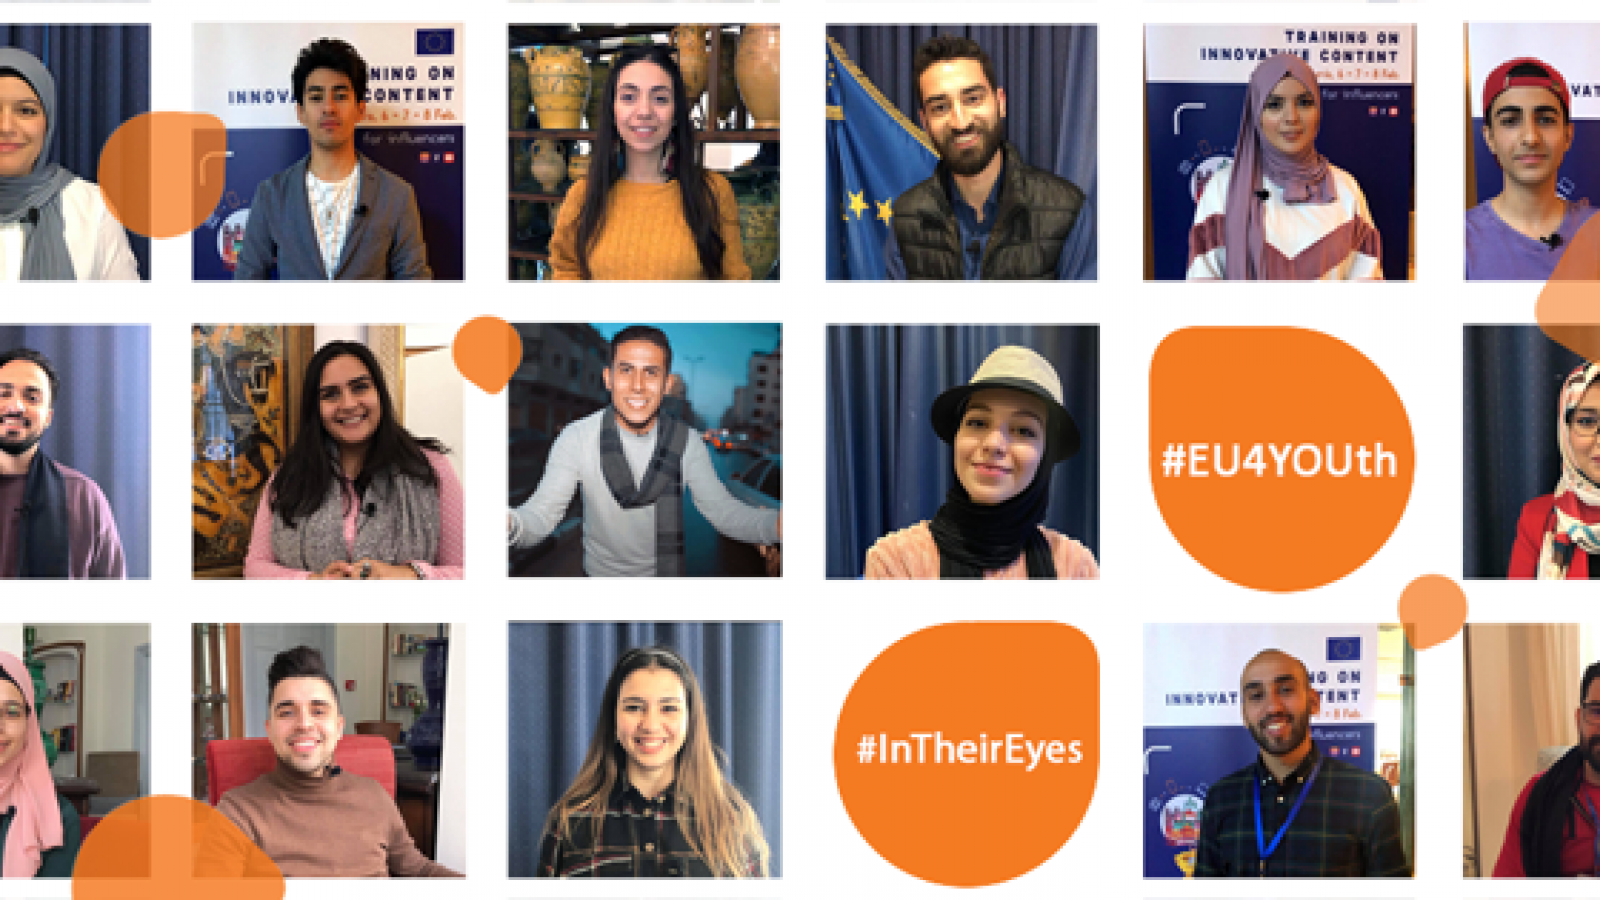 #InTheirEyes #EU4YOUth: not just a competition - a great human adventure 2.0!